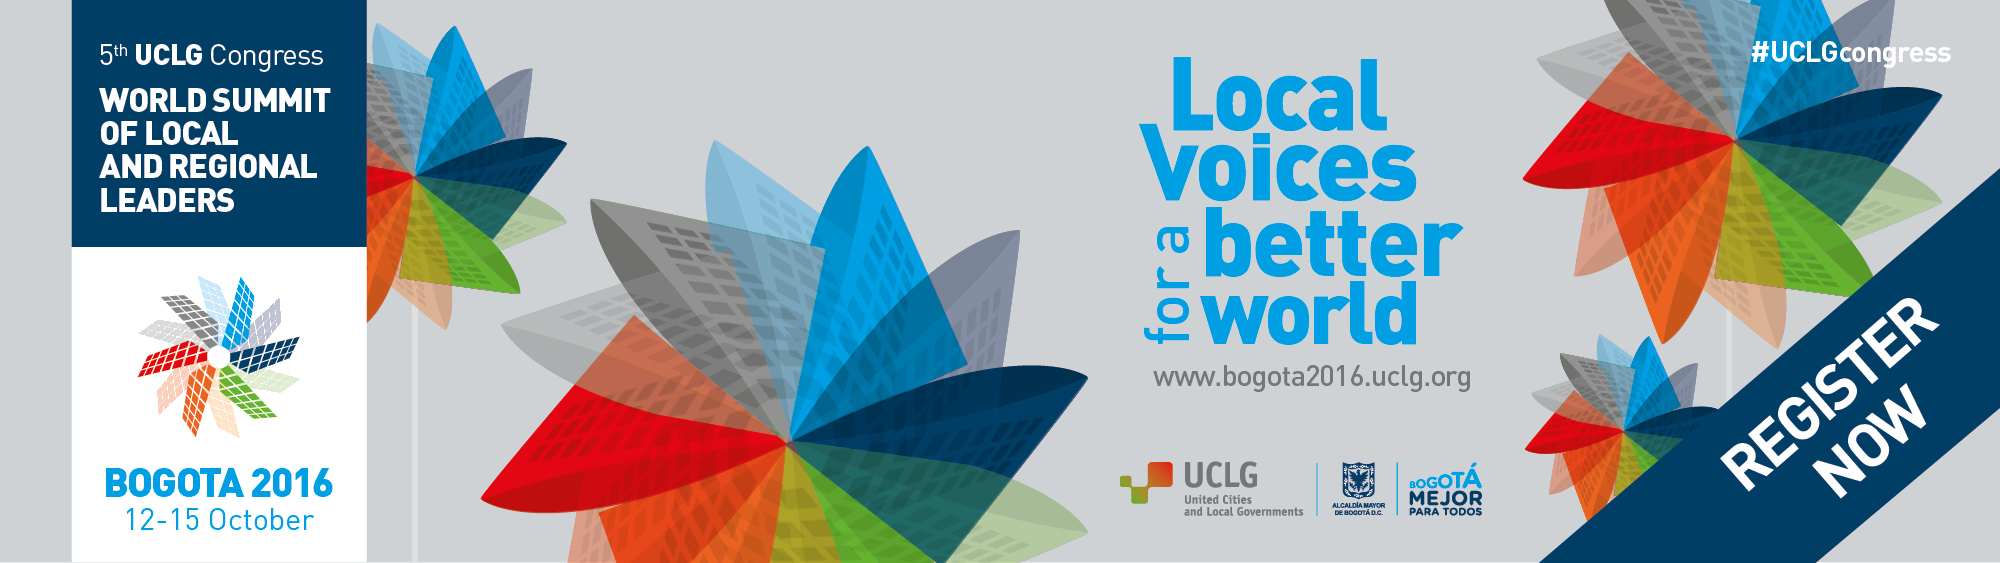 World Summit of Local and Regional governments - UCLG Congress